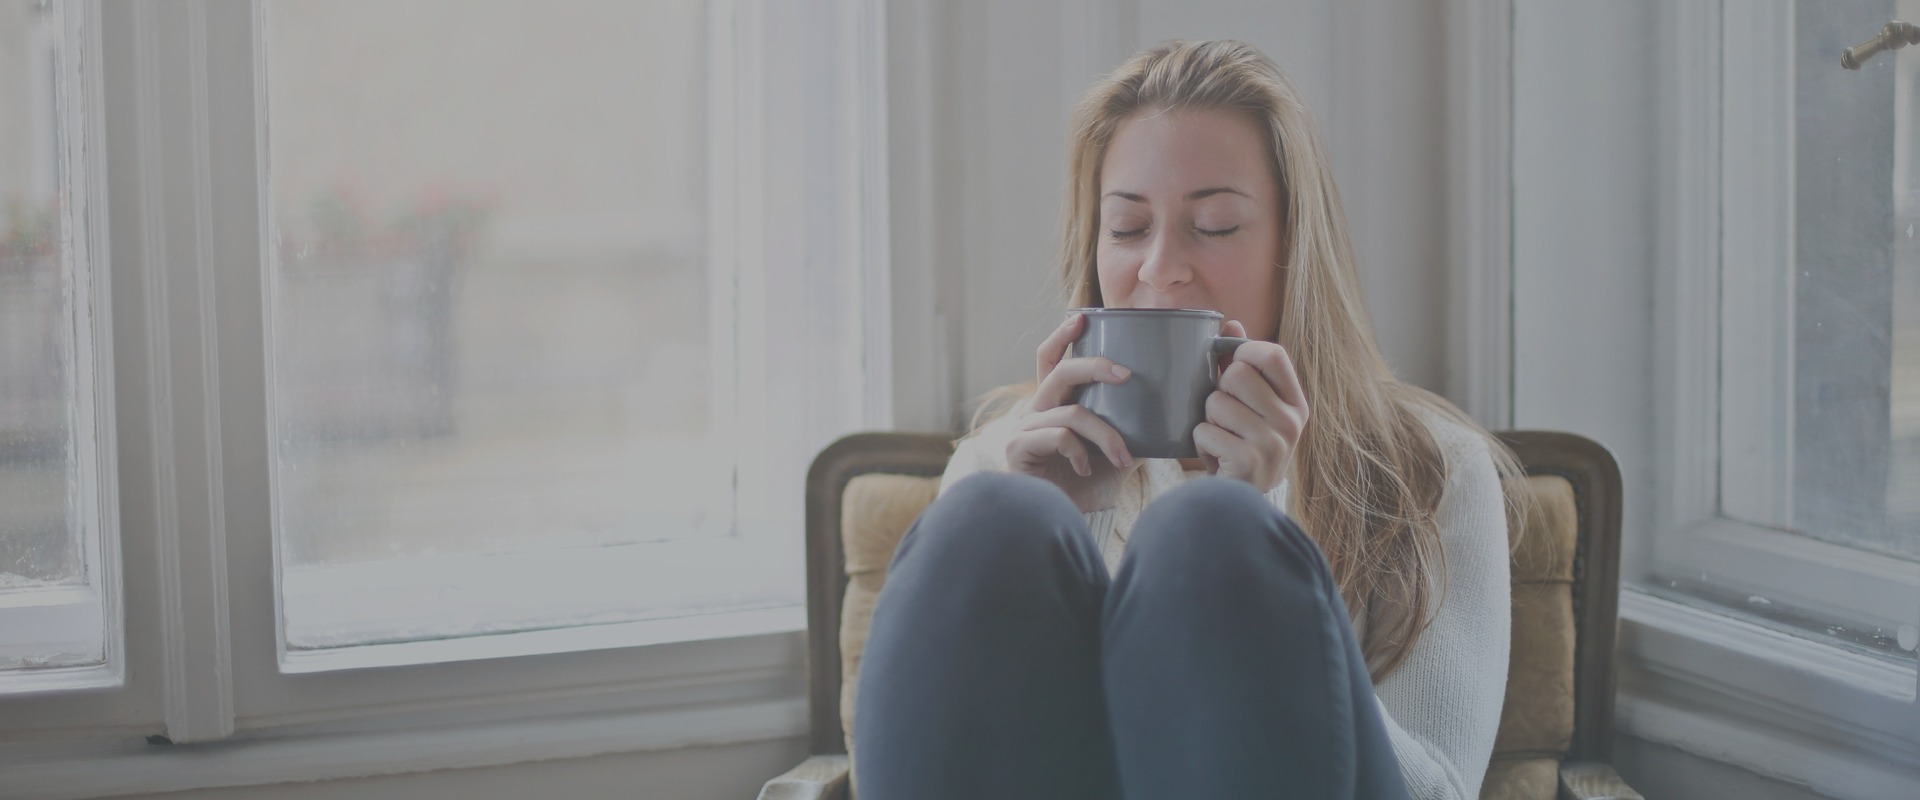 Woman sitting on chair next to window with eyes closed whilst drinking from a mug